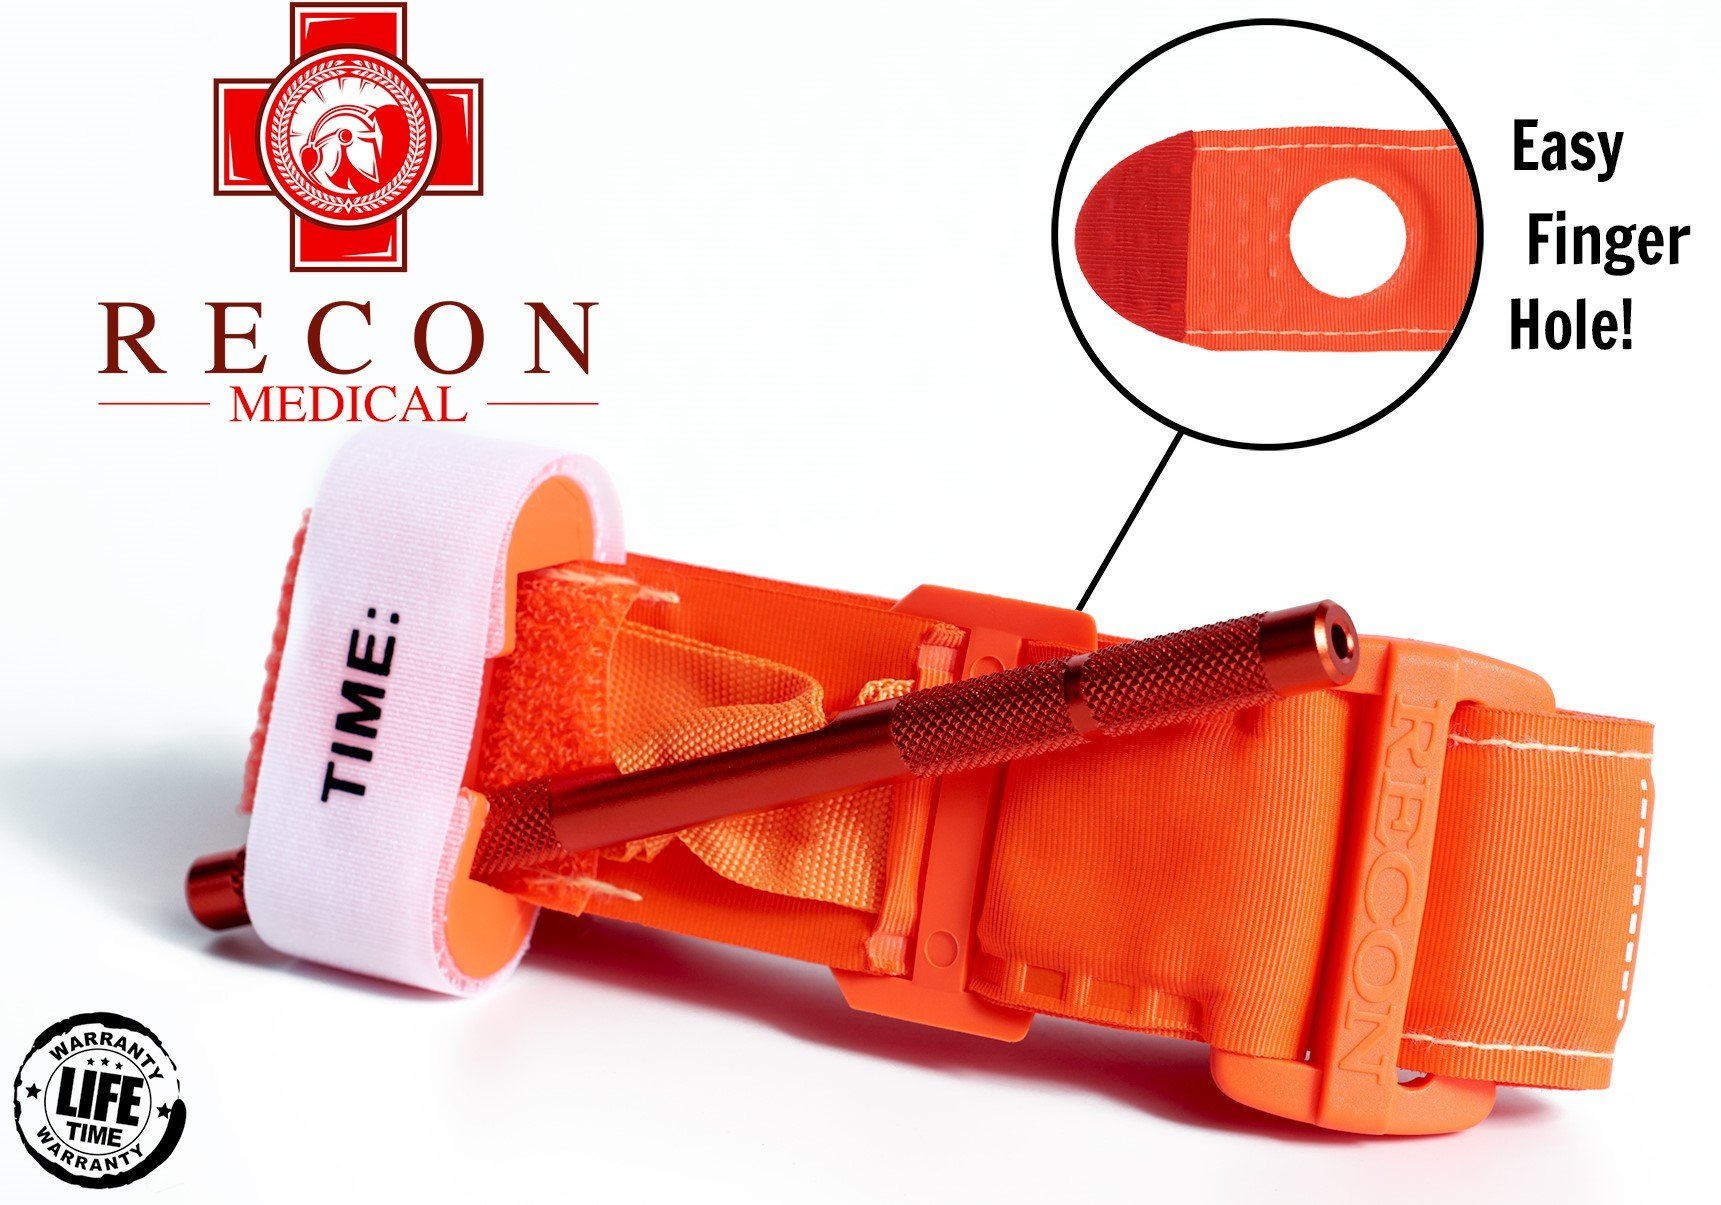 Recon Medical ORNGTQTourniquet -(ORANGE) Gen 3 Mil-Spec Kevlar Metal Windlass Aluminum First Aid Tactical Swat Medic Pre-Hospital Life Saving Hemorrhage Control Registration Card 1 Pack by Recon Medical